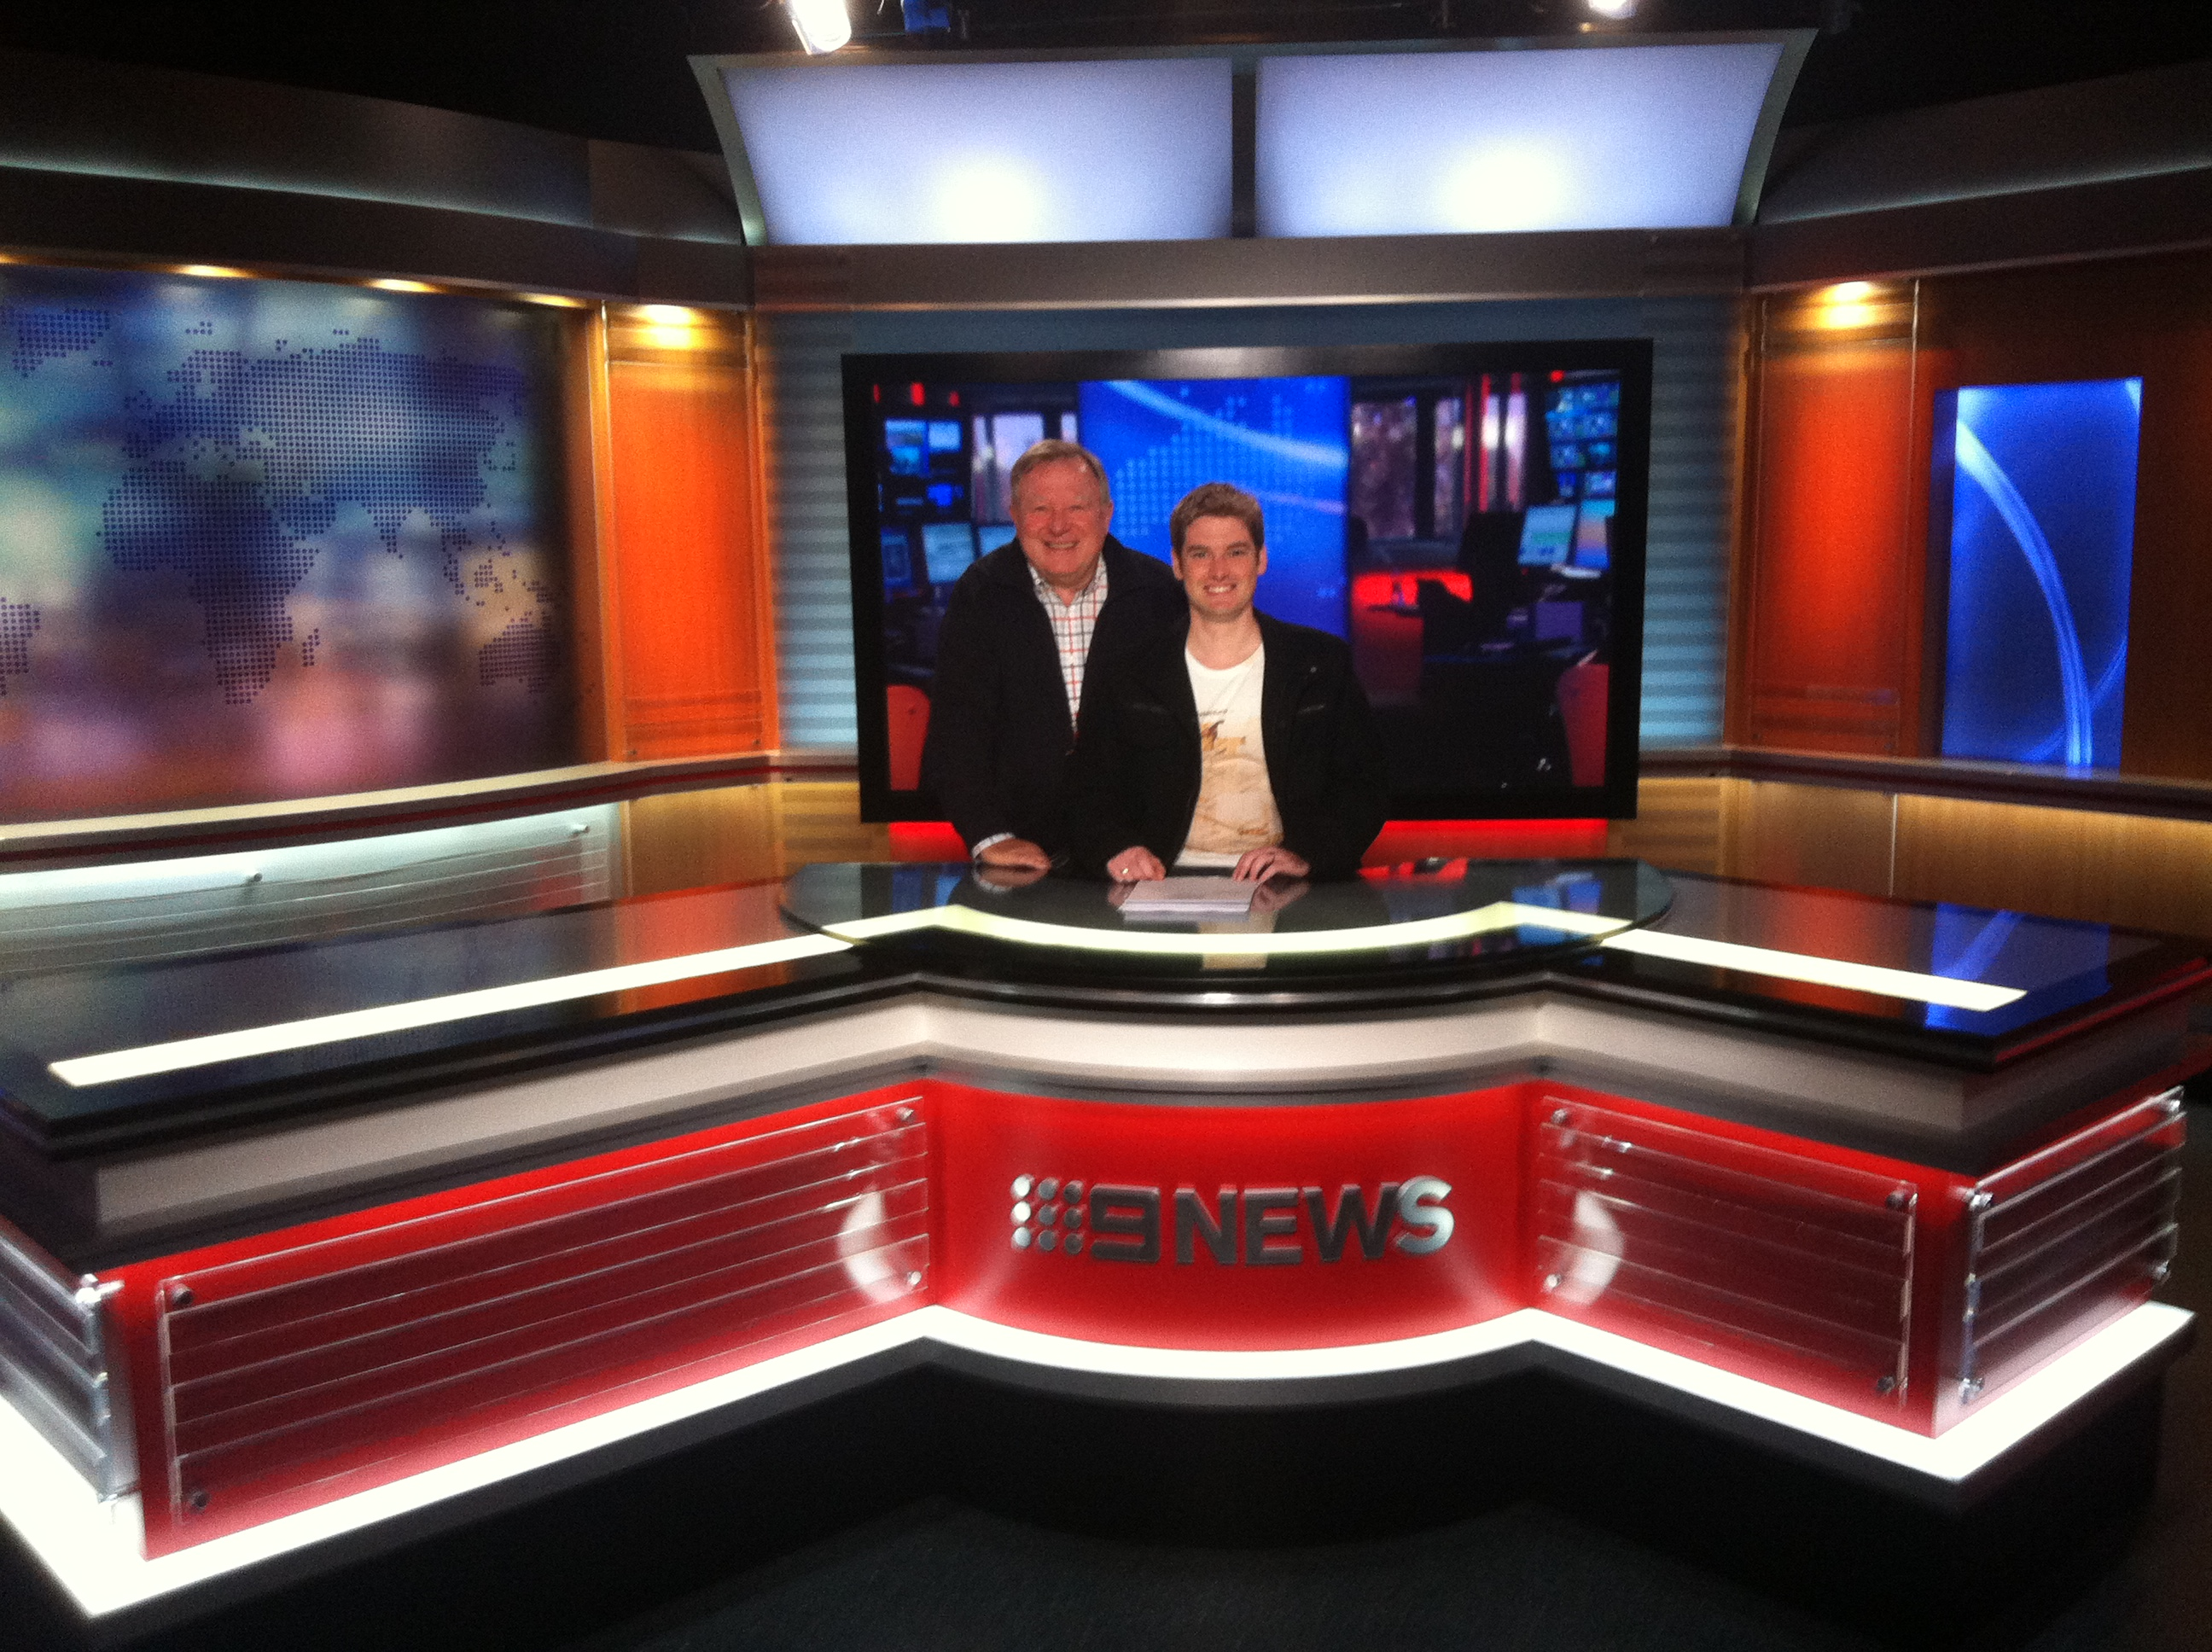 Seven 17 Bourke, A visit to the Channel Nine Studio – The